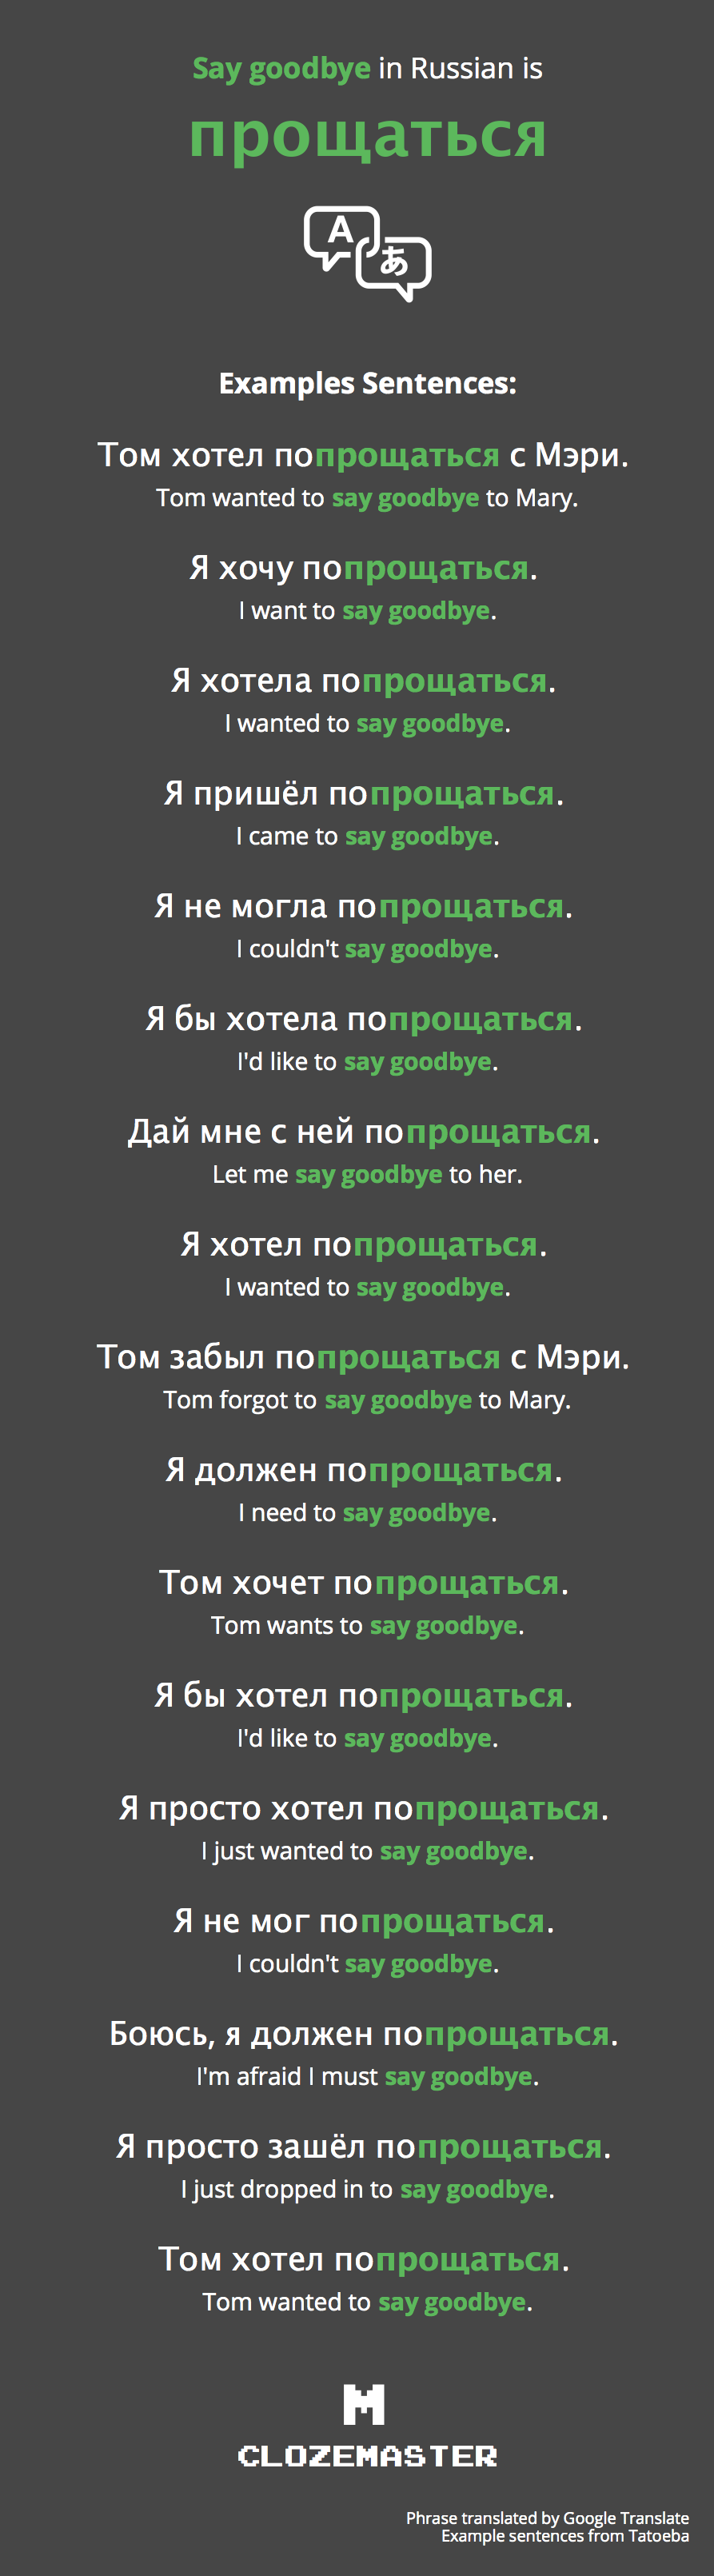 How To Say Say Goodbye In Russian Clozemaster